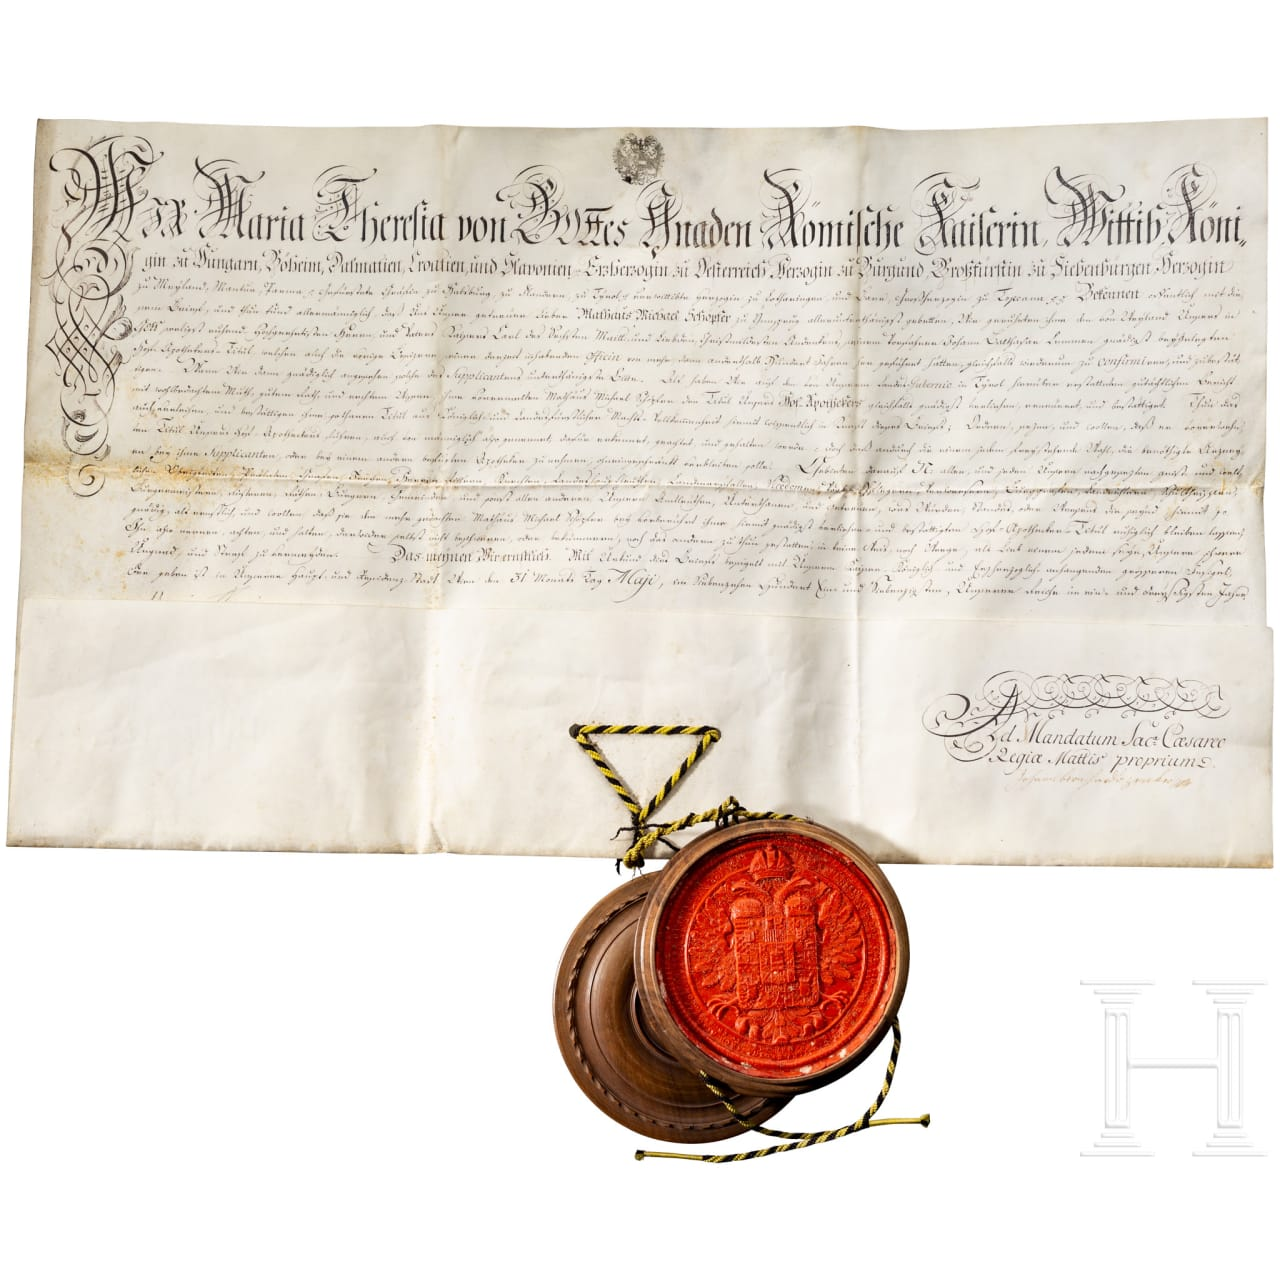 Empress Maria Theresa - Document of appointment as court pharmacist, dated 1771